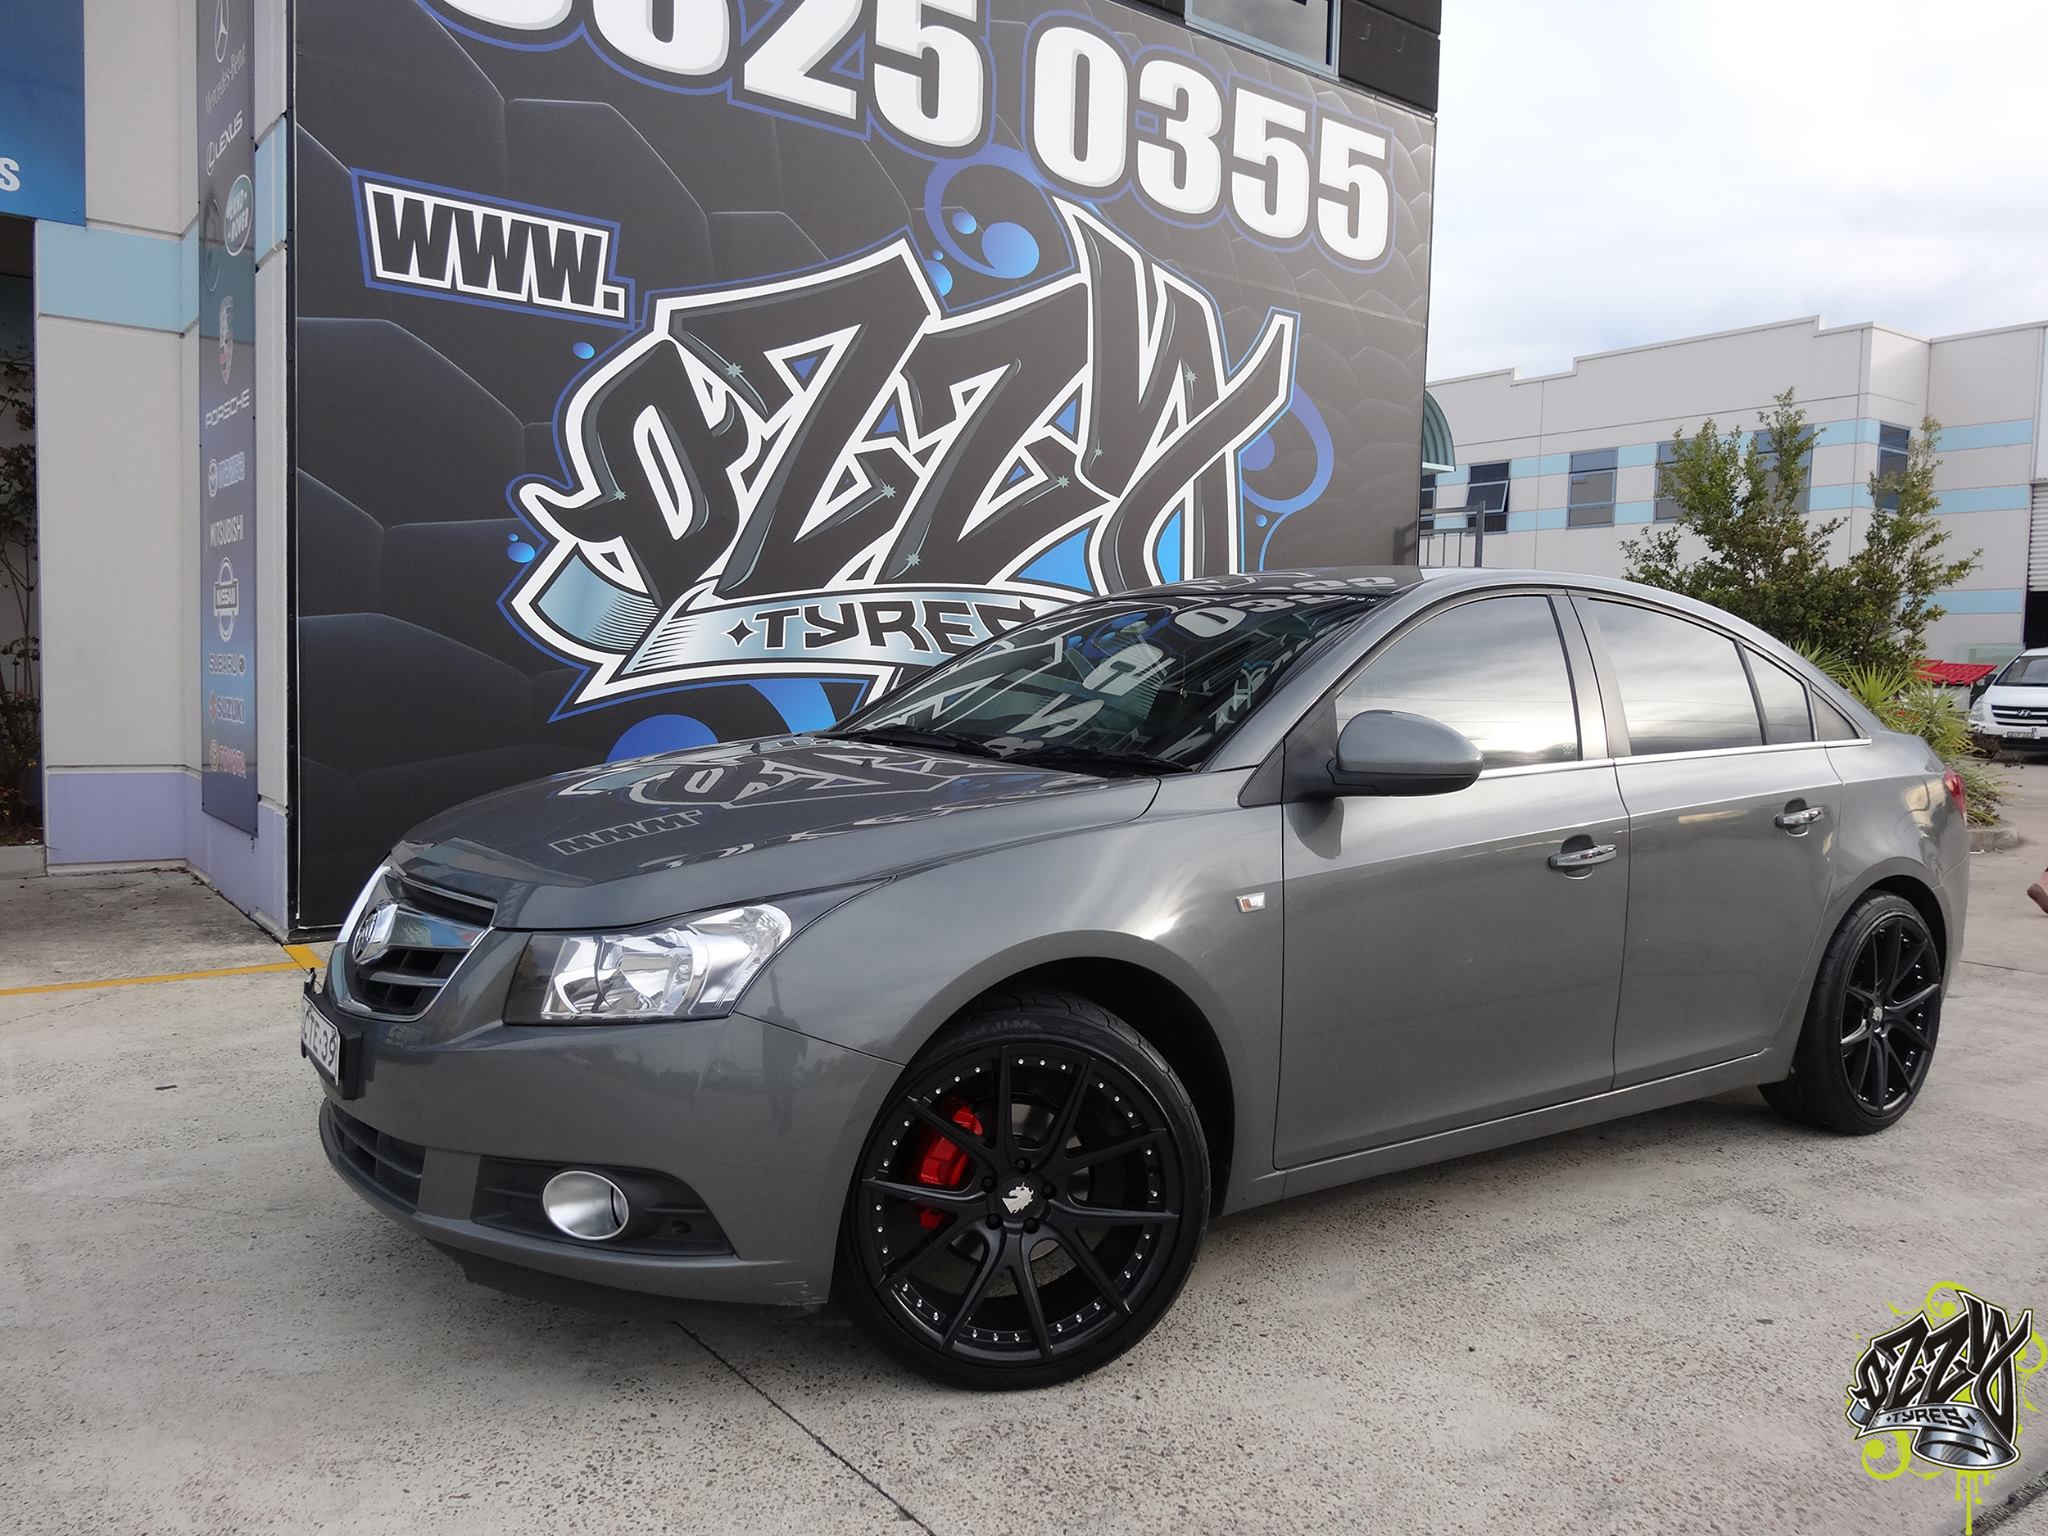 Holden Cruze Rims Available From Ozzy Tyres Australia